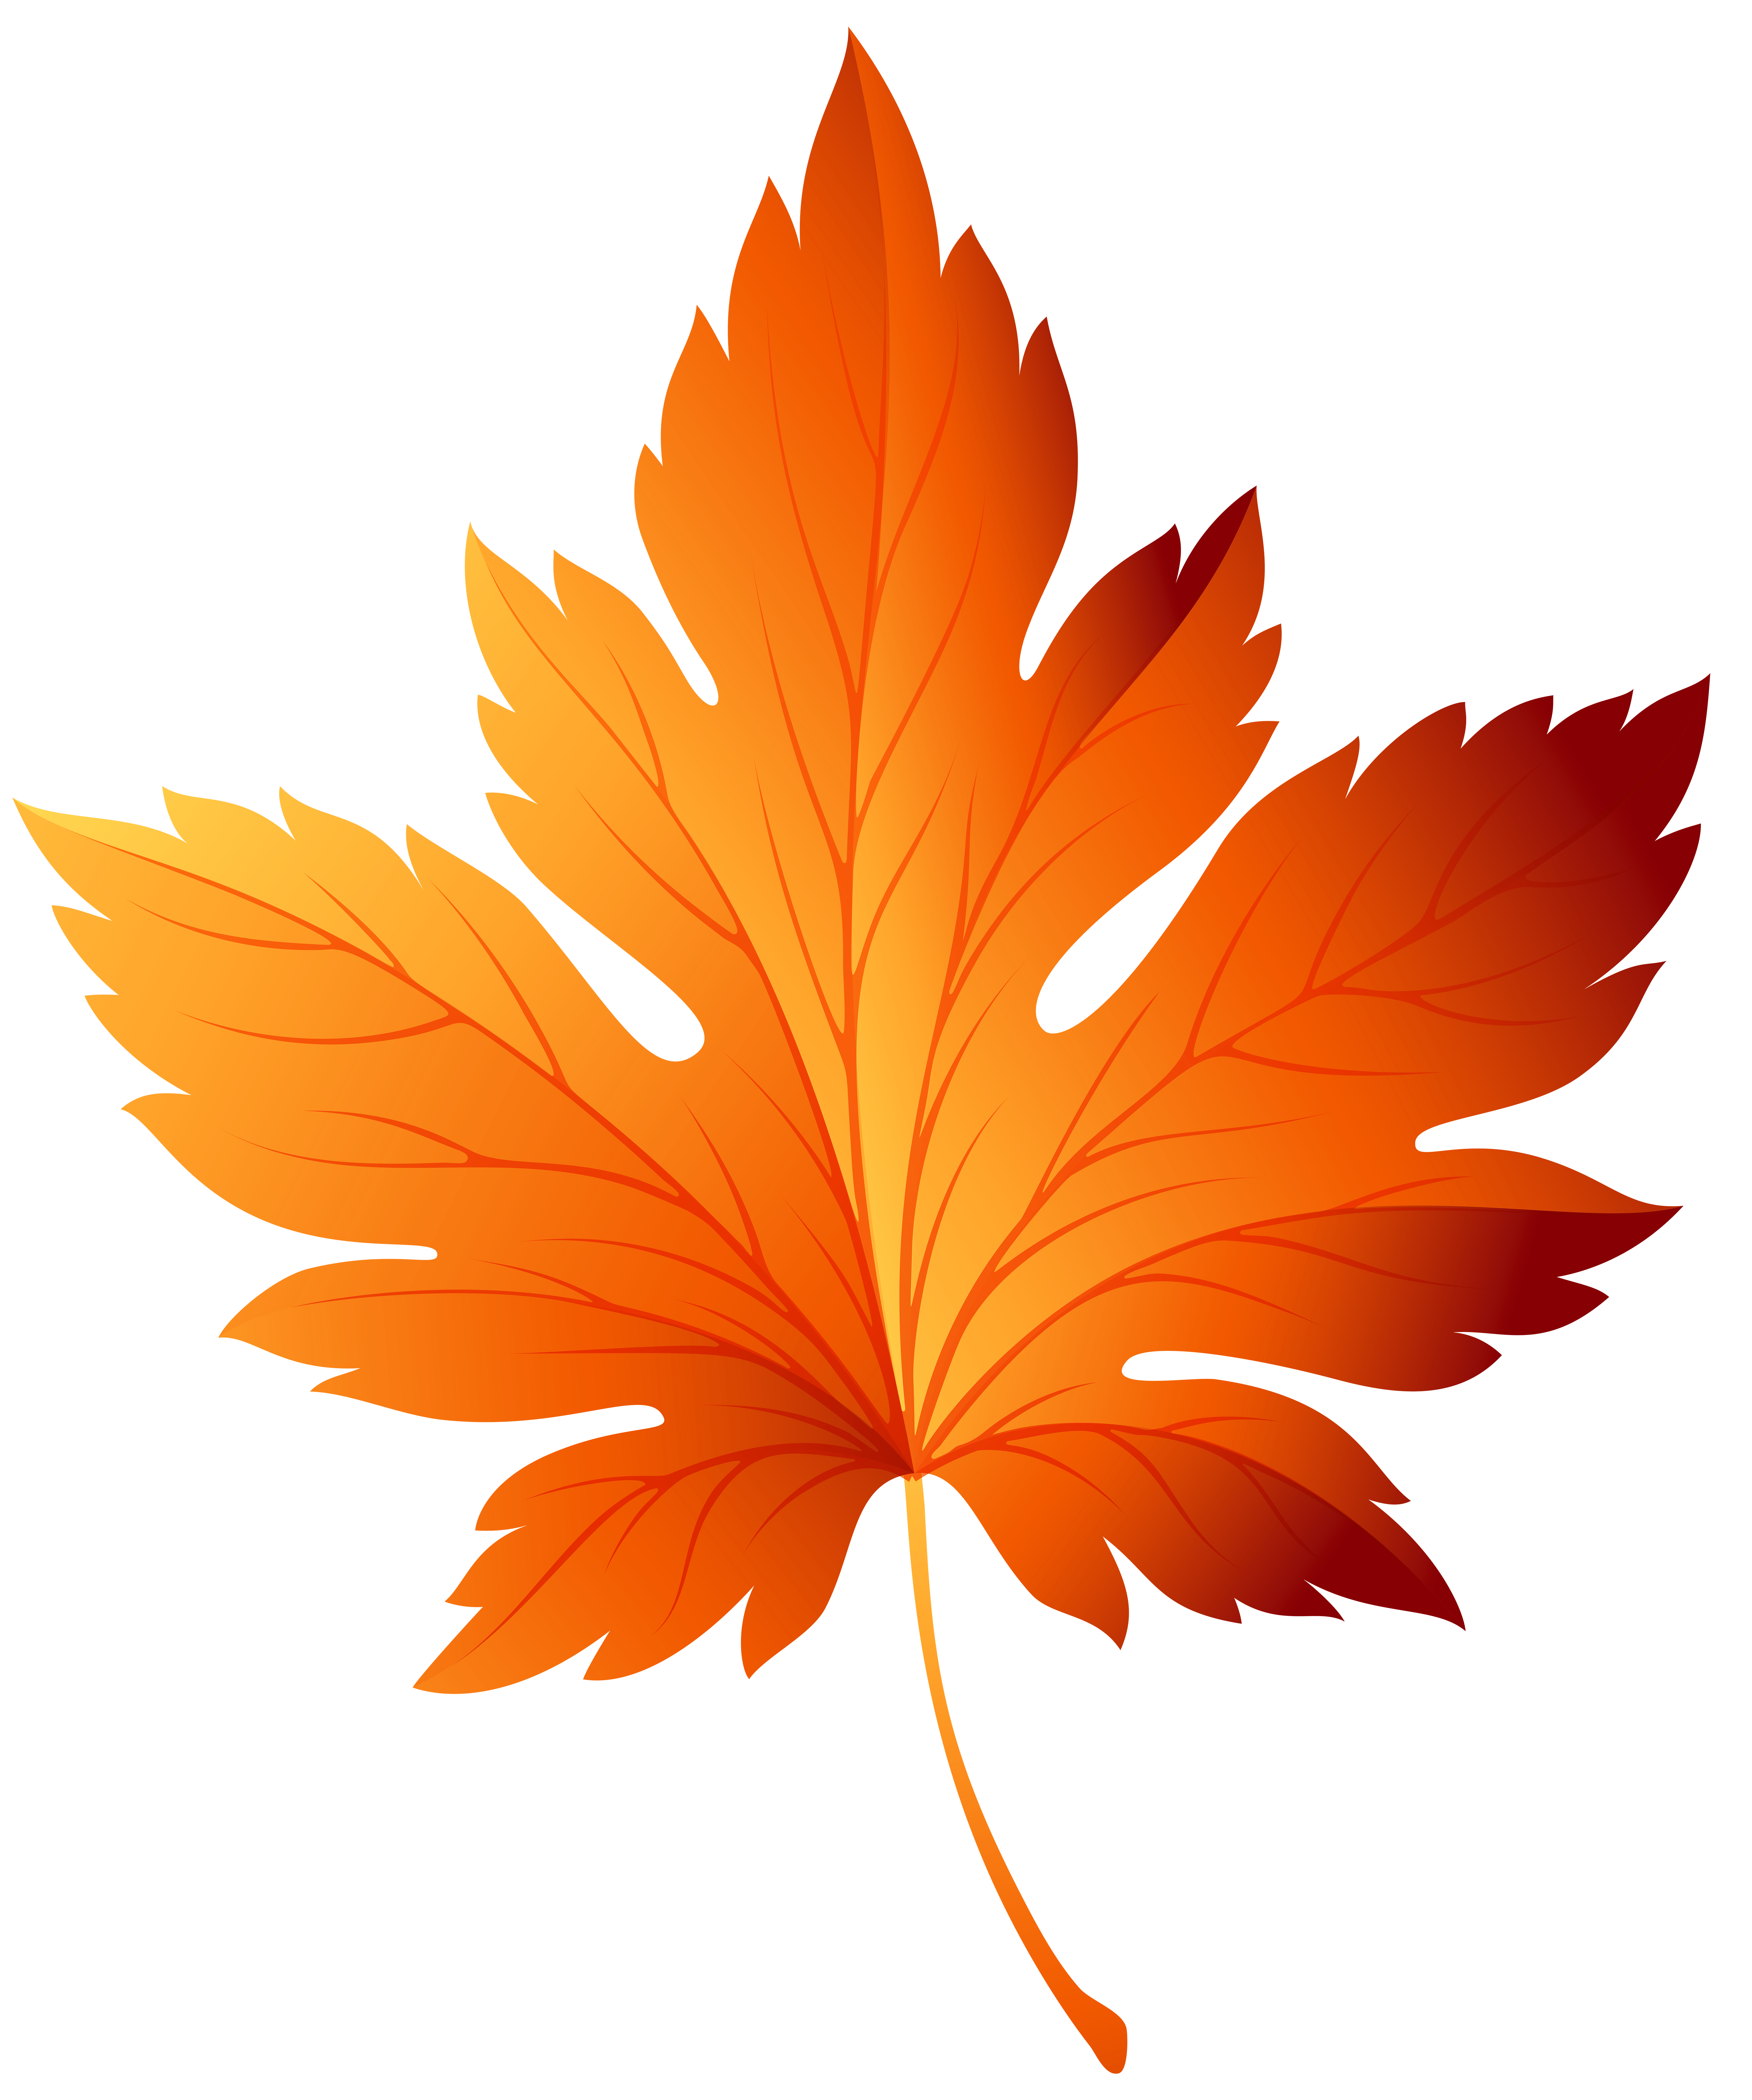 Usa autumn leaves clipground. Tree clipart rice